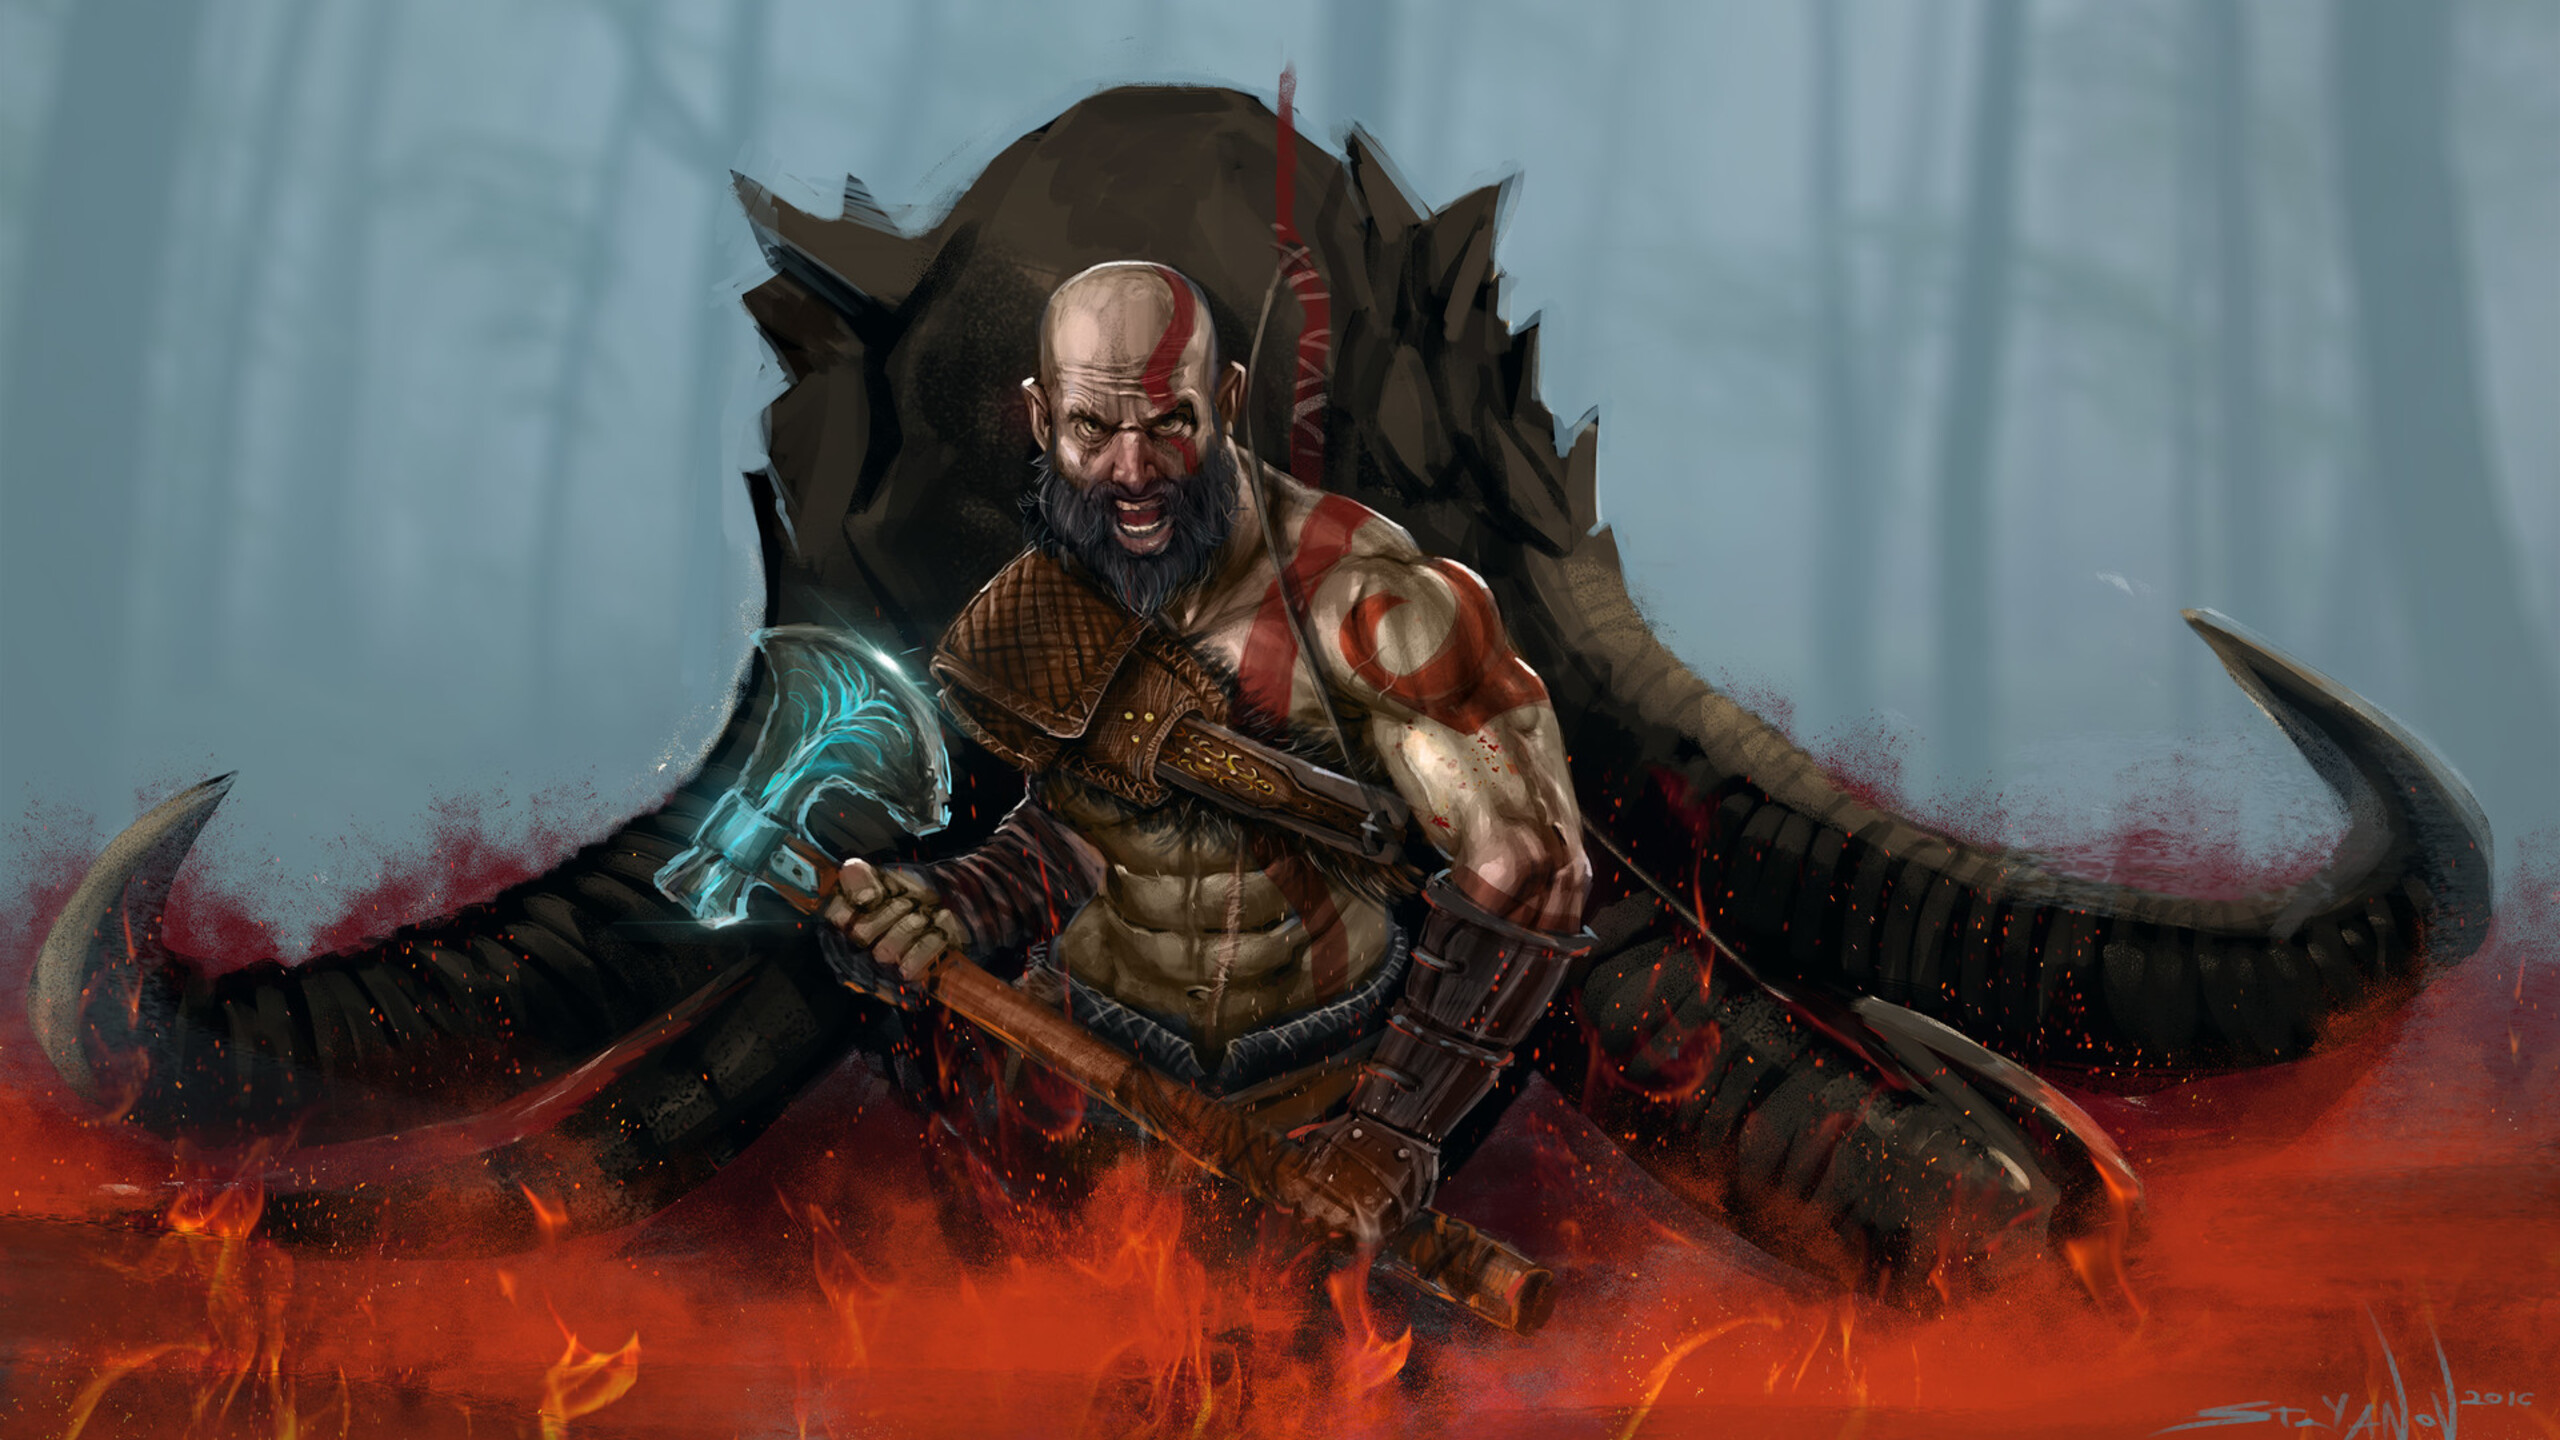 2560x1440 god of war 4 art 1440p resolution hd 4k wallpapers, images